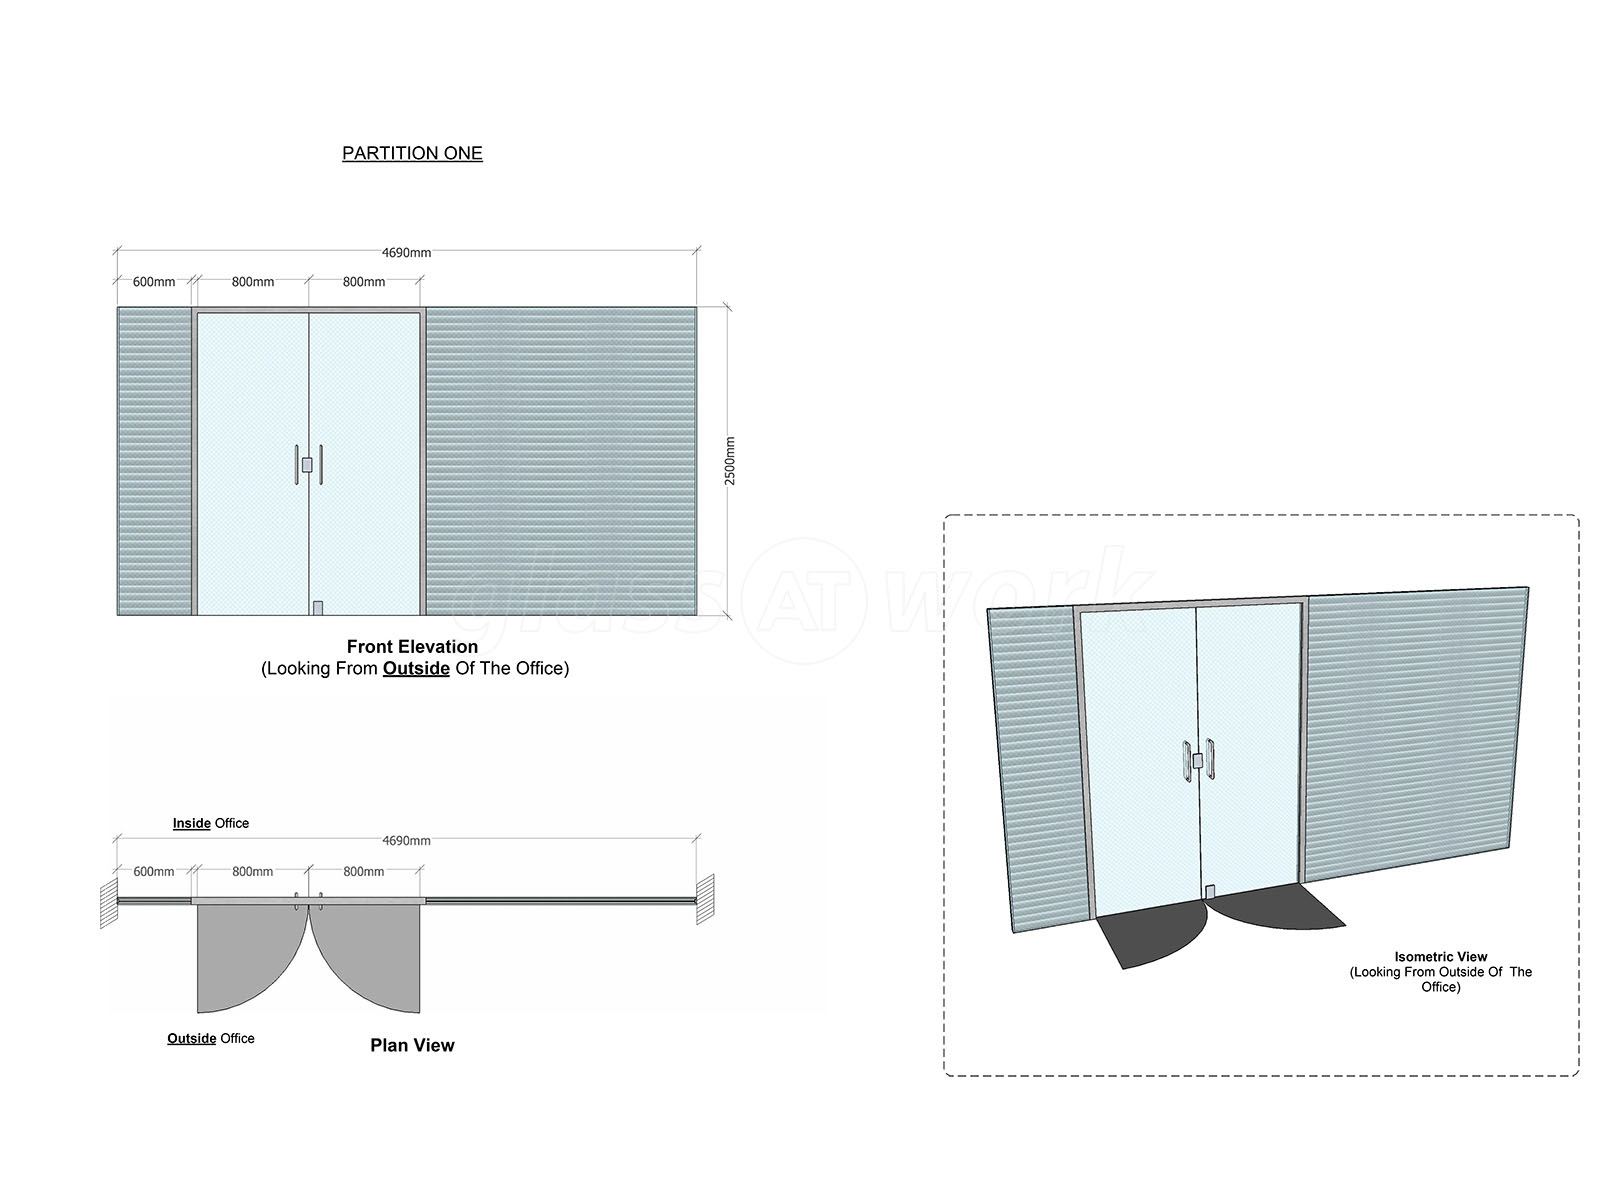 Glass Partitioning At The Coign Church Woking Surrey Double Glazing Diagram Glazed Screen With Integral Blinds And